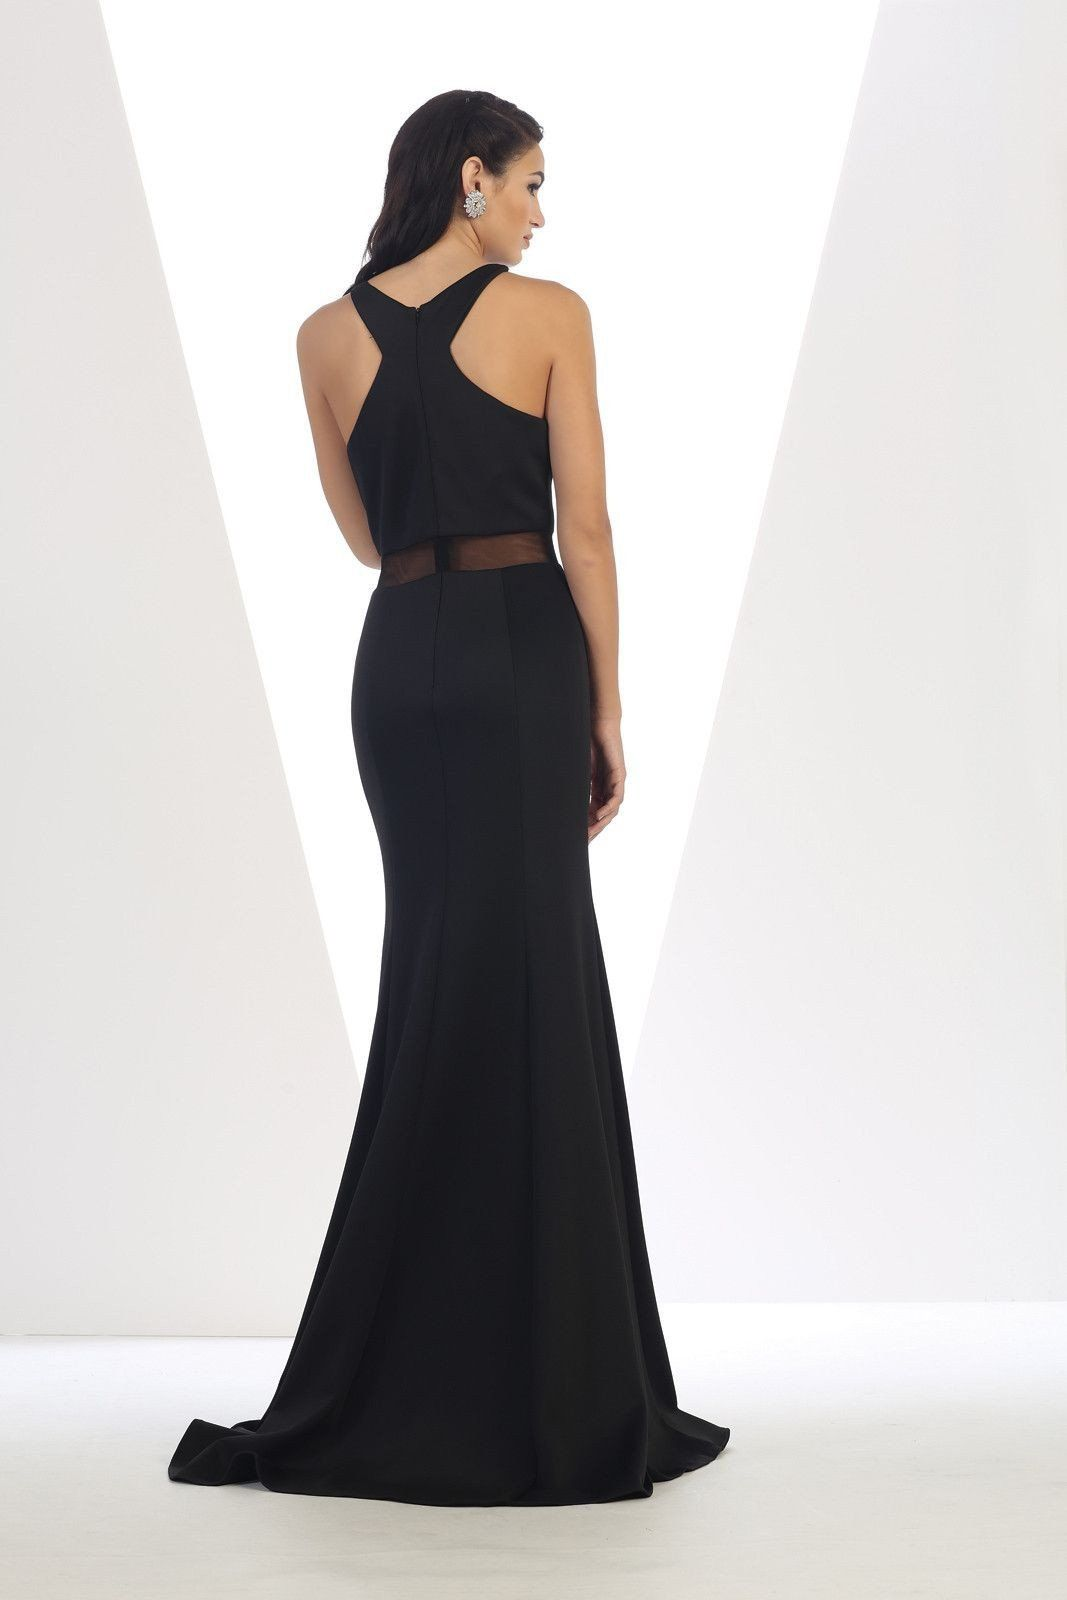 Long evening gown formal dress prom products pinterest simple